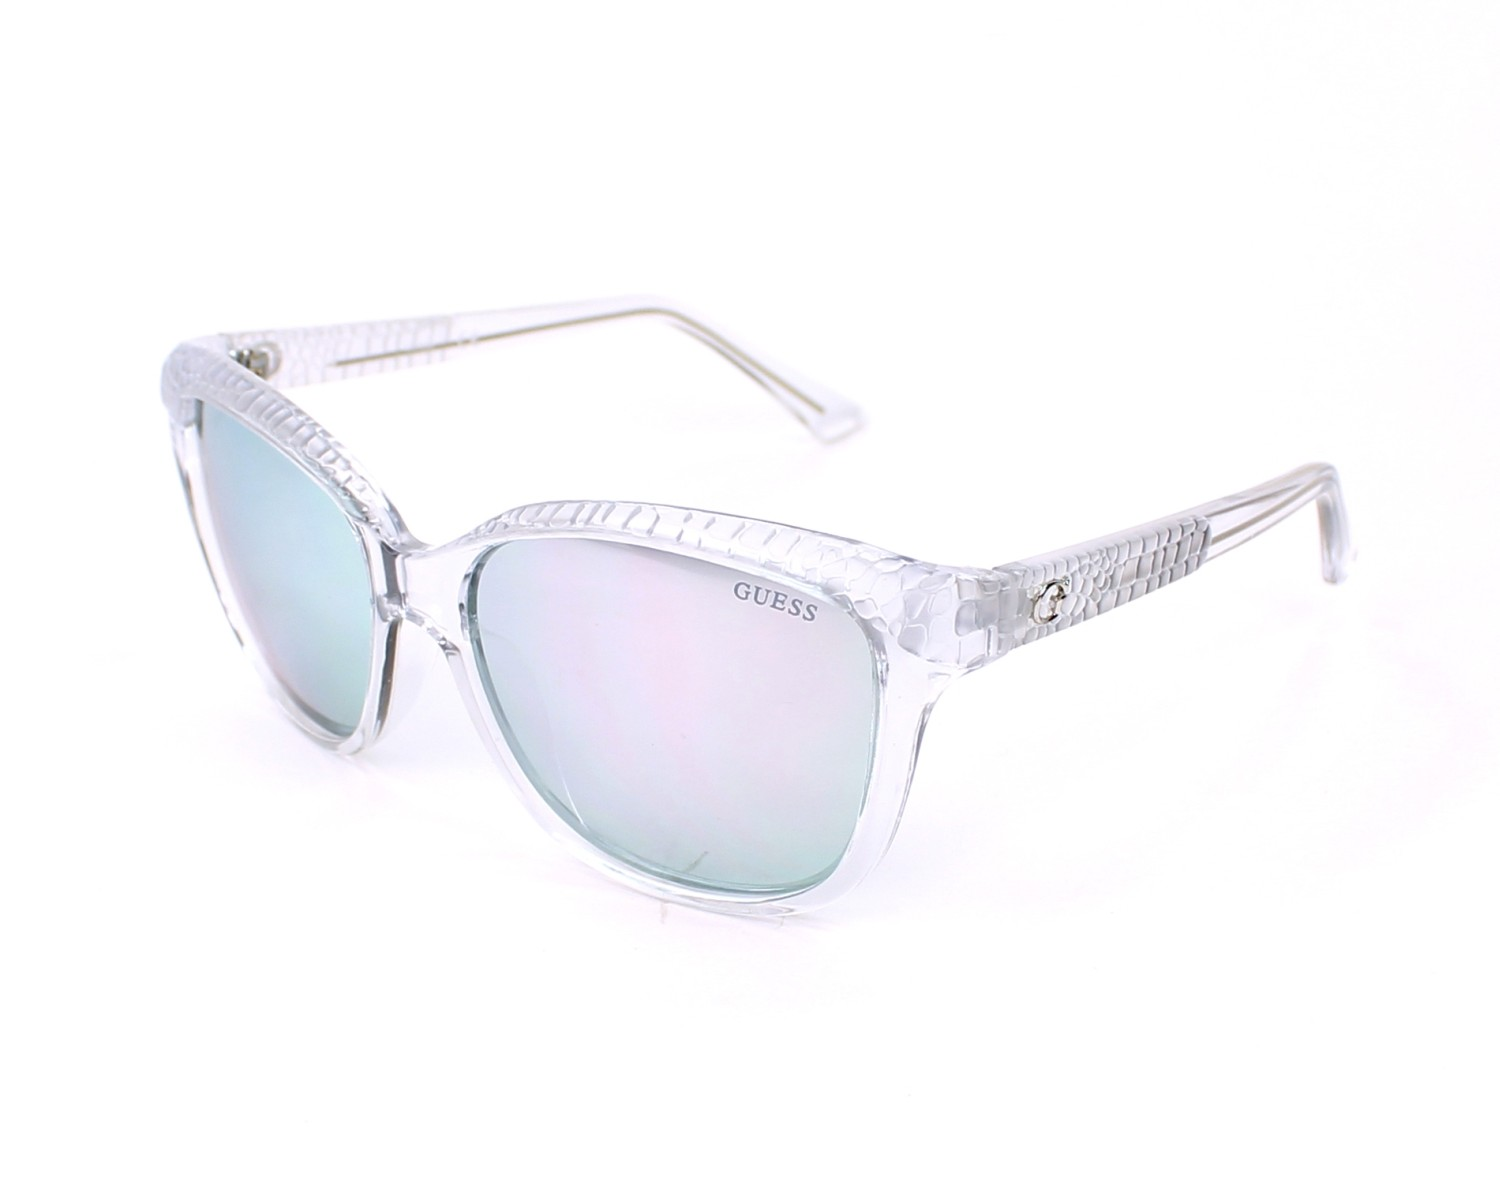 Old Fashioned Guess Sunglasses White Frame Gift - Framed Art Ideas ...